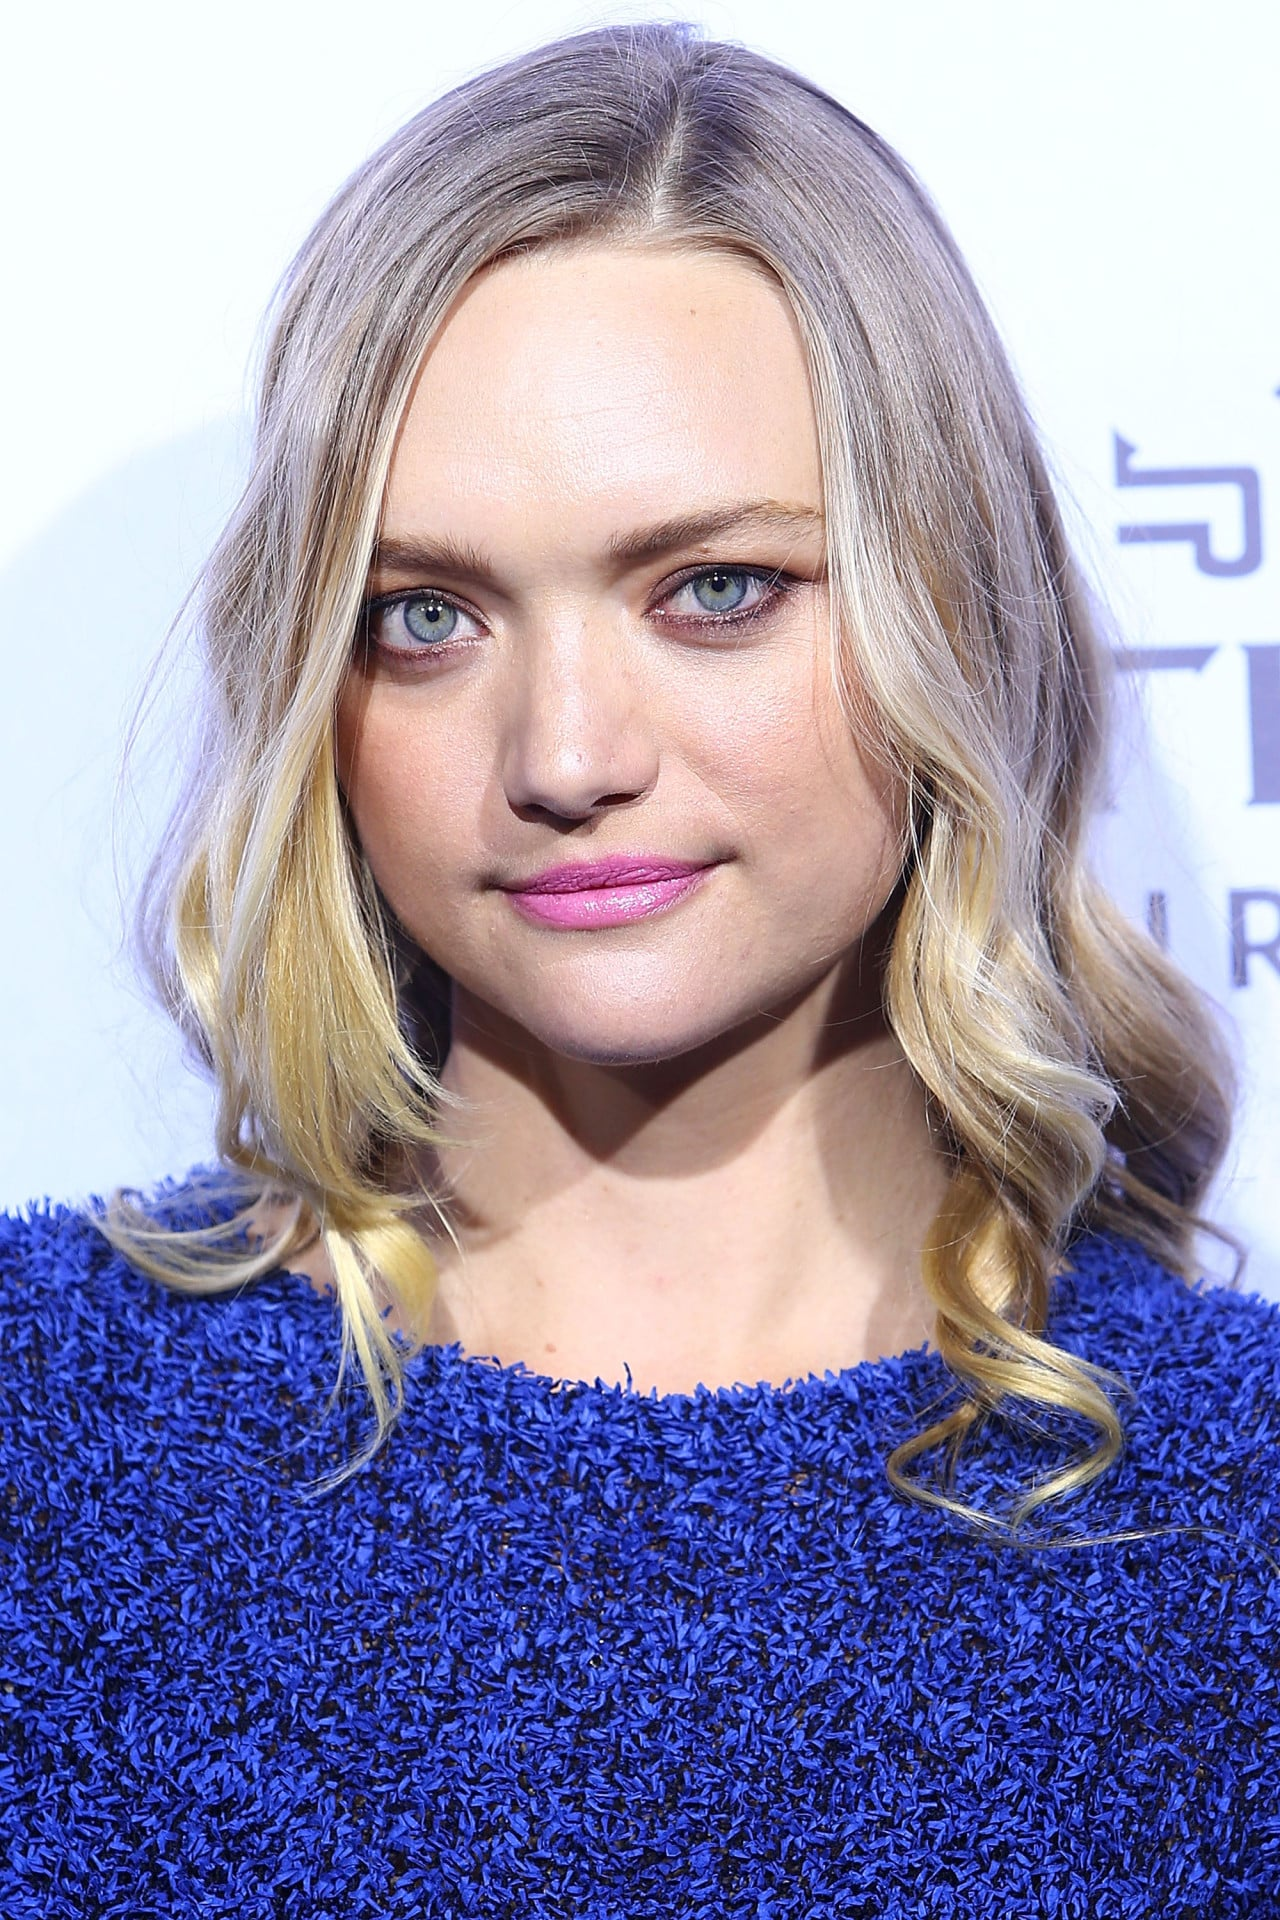 Gemma Ward is ready to make her modelling comeback